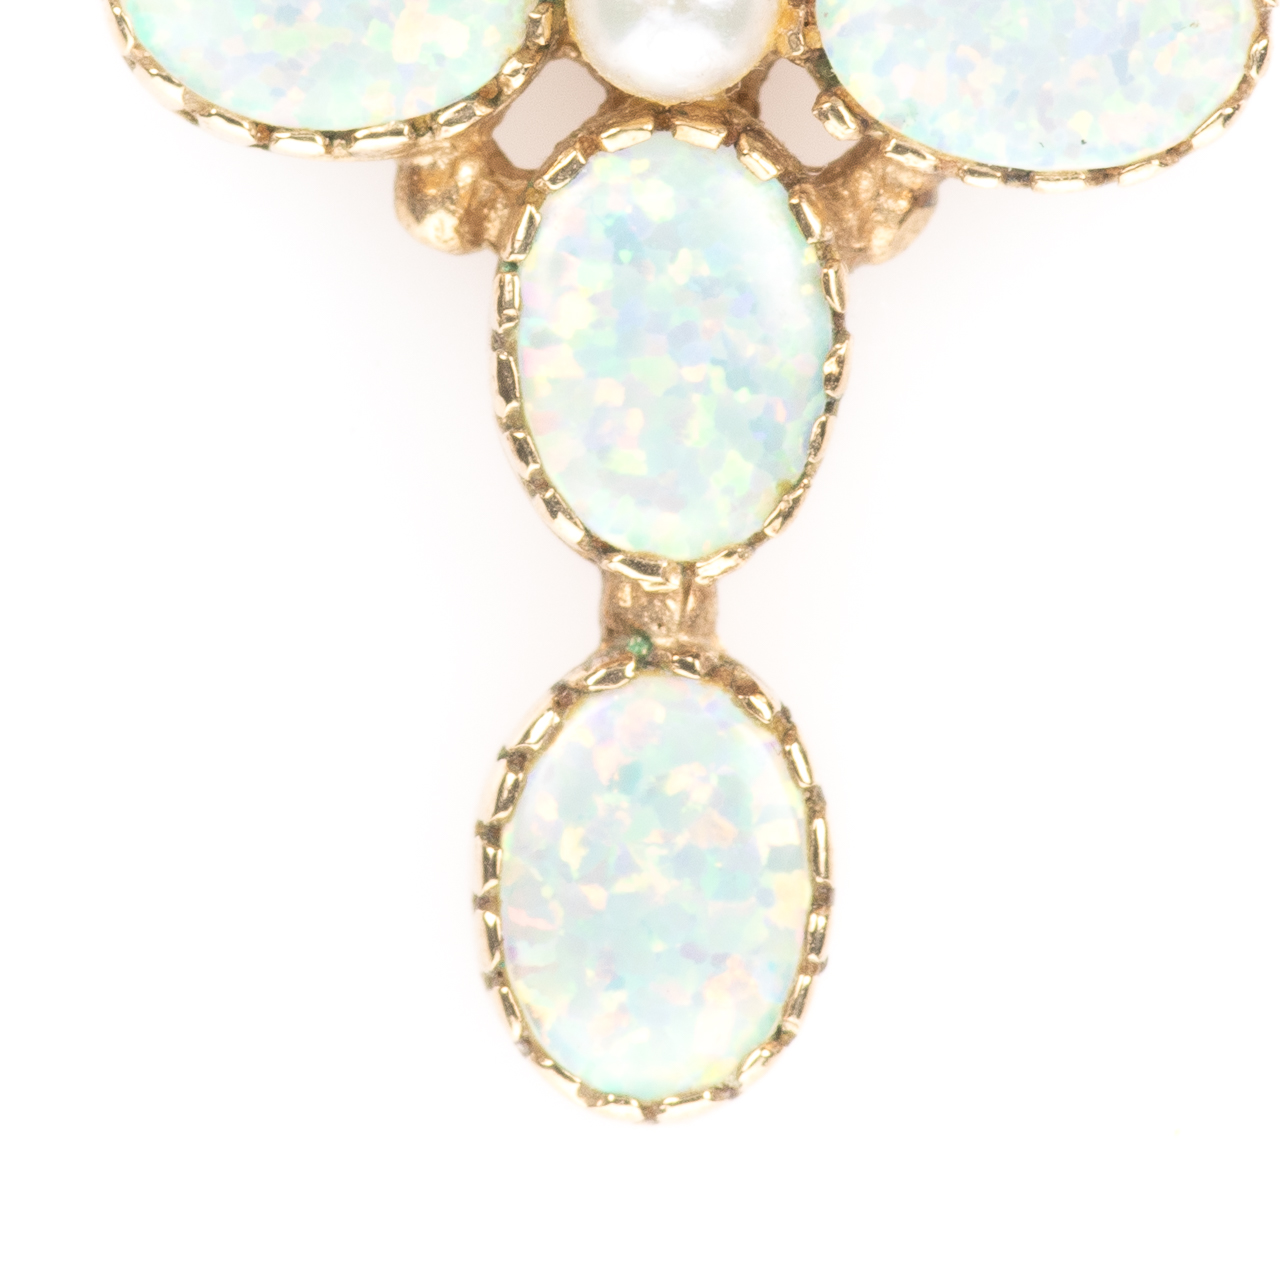 9ct Gold Solid 1ct Opal & Pearl Cross Pendant - Image 2 of 6